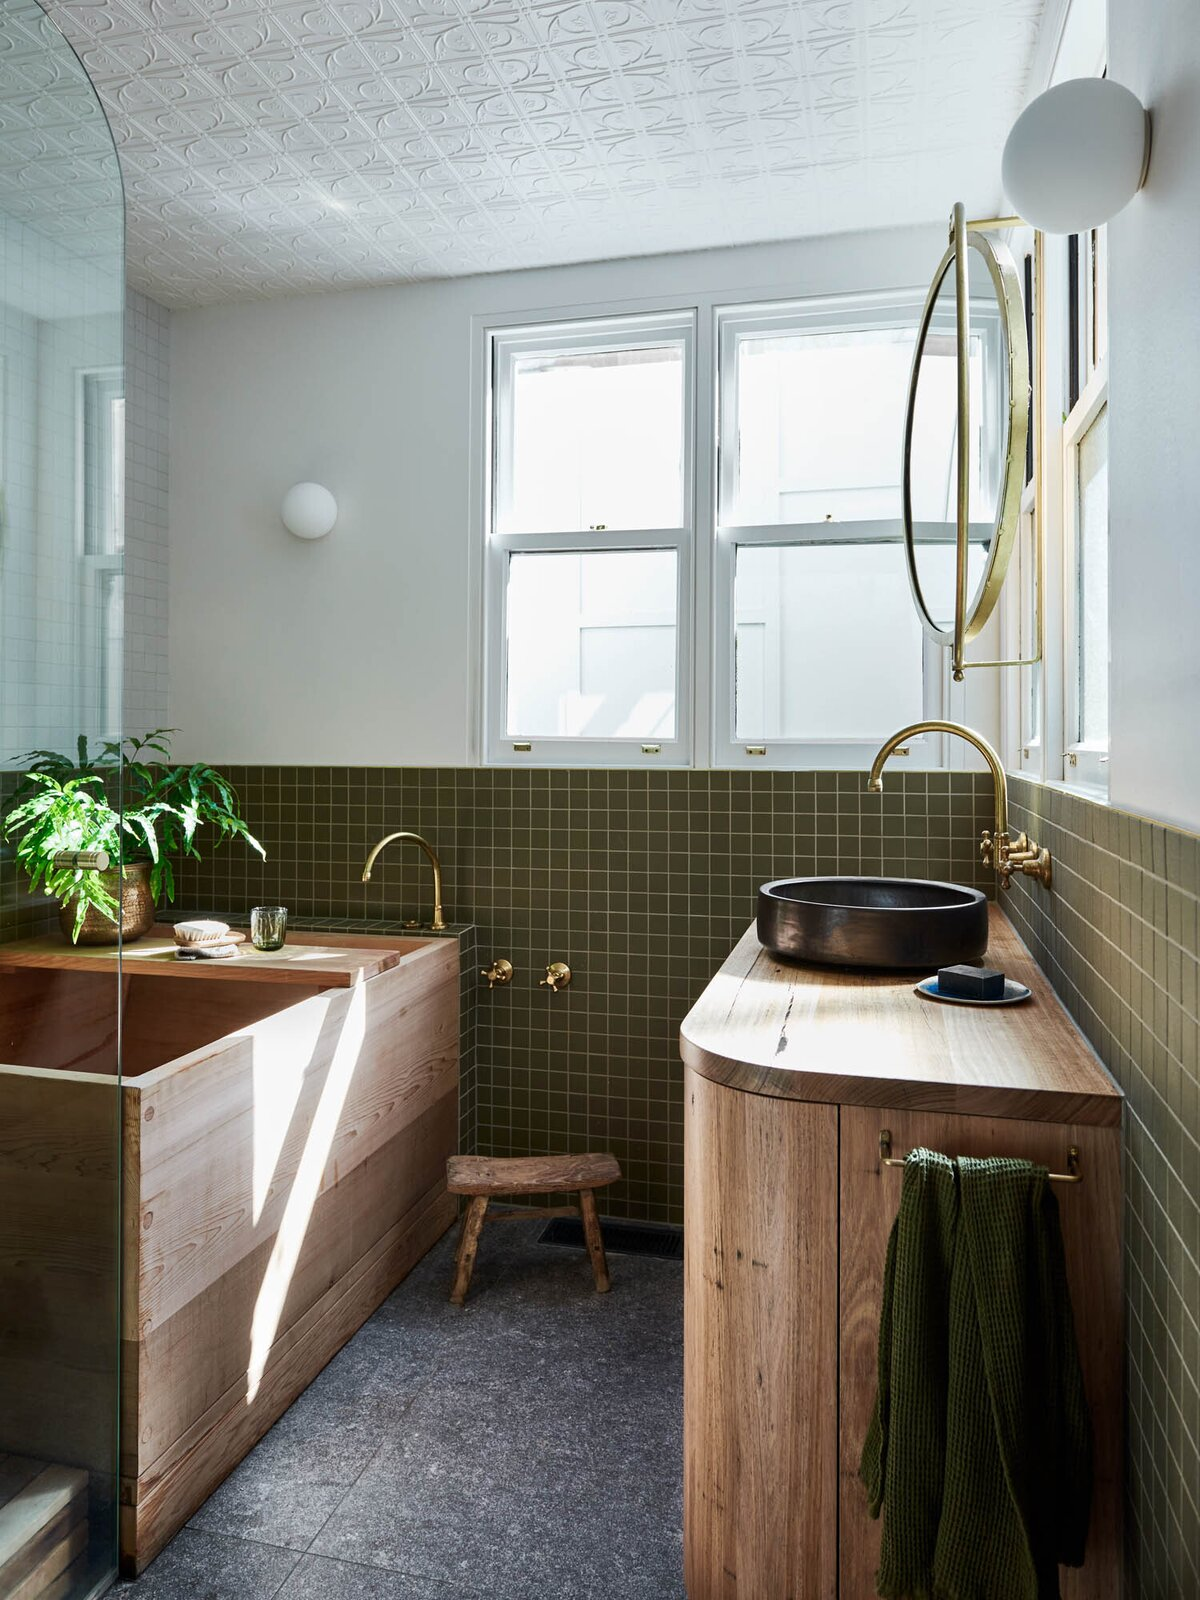 Bath, Wood, Mosaic Tile, Wall, Soaking, and Vessel  Dwell's Favorite Bath Photos from A Cramped Melbourne Victorian Gets an Earthy Refresh Inspired by the Australian Bush